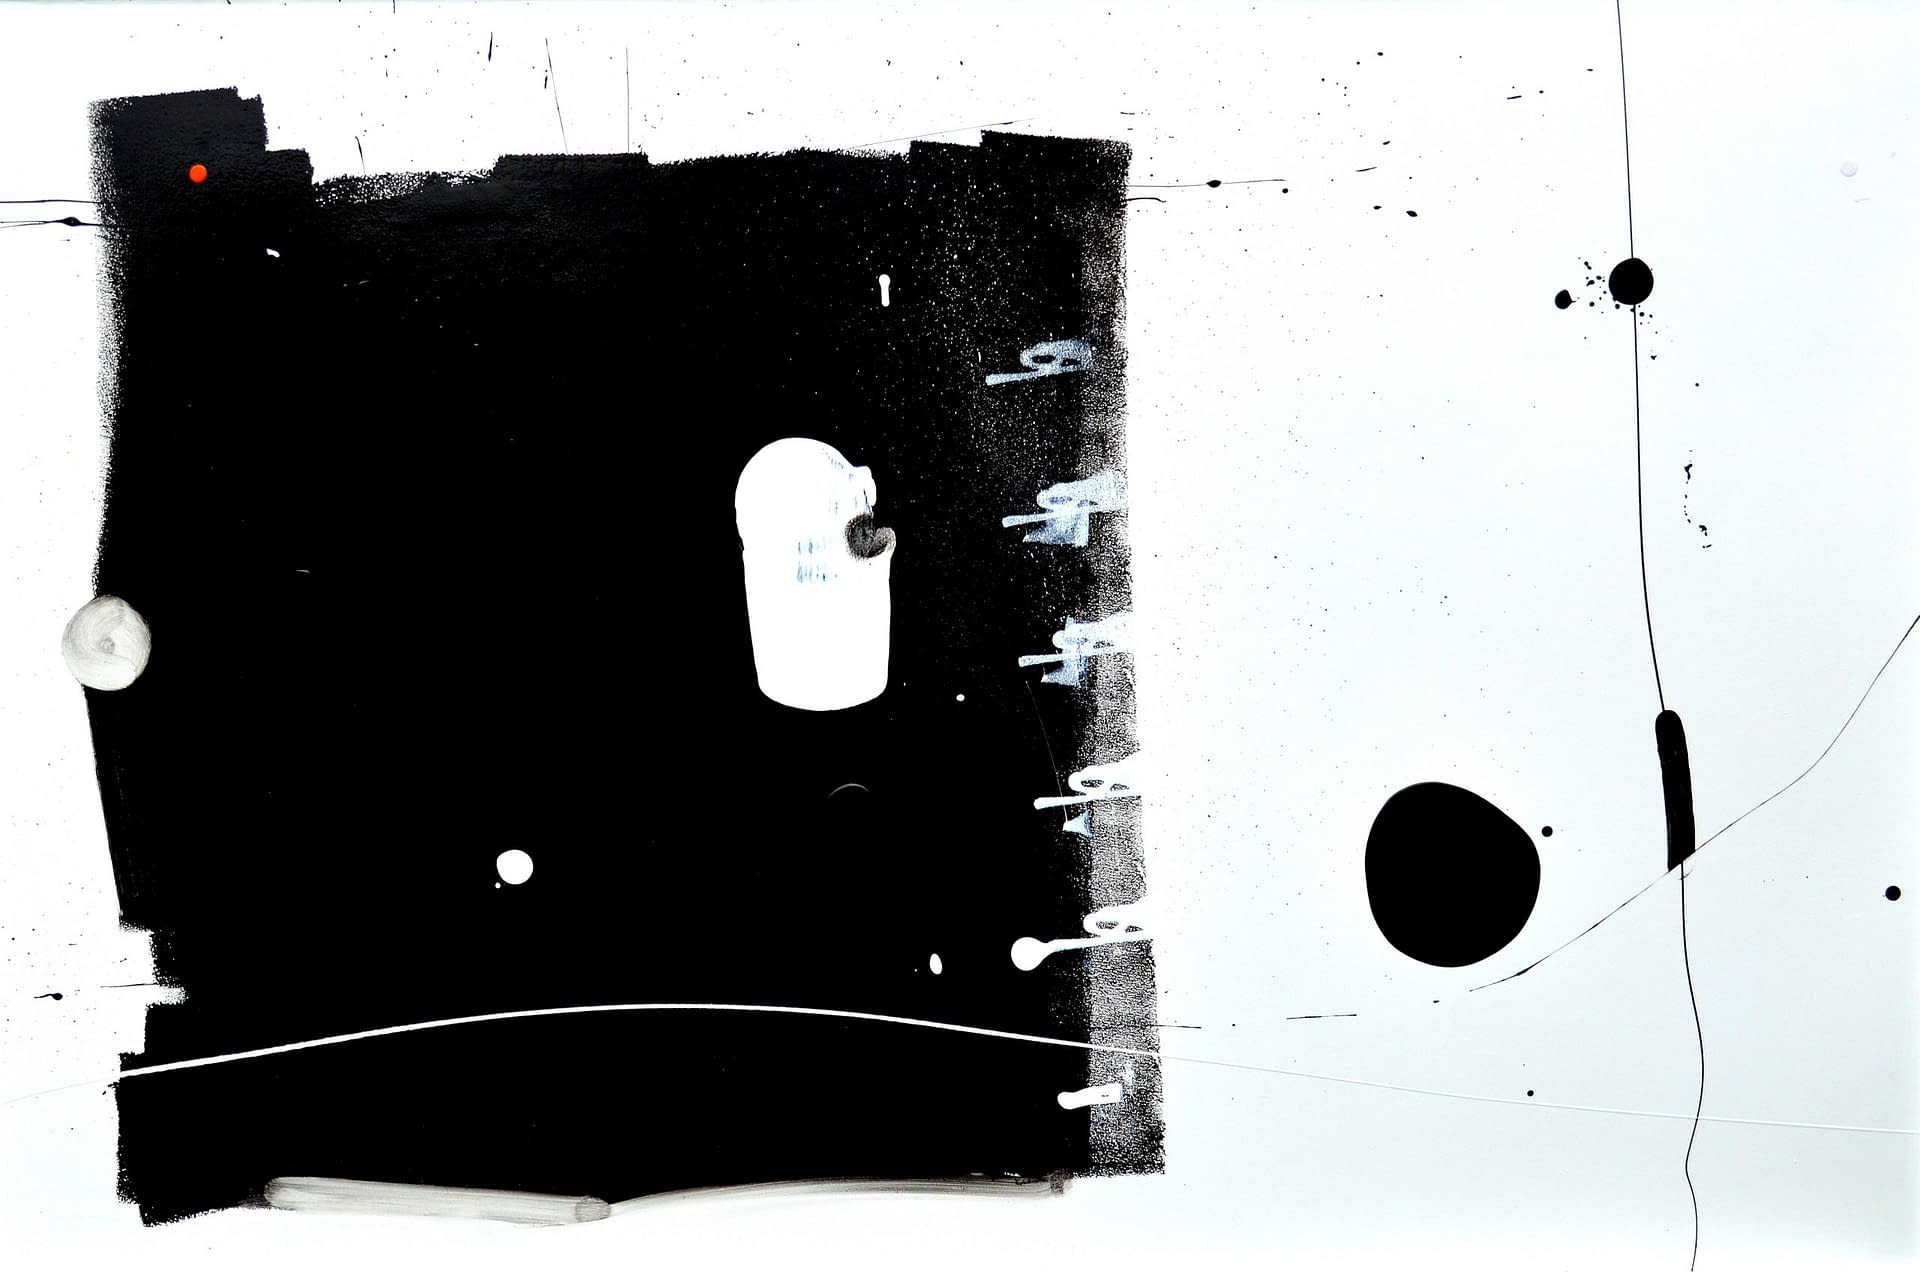 Curious Big Black Square Running Away from Black Blob Over There Painting anthony hunter